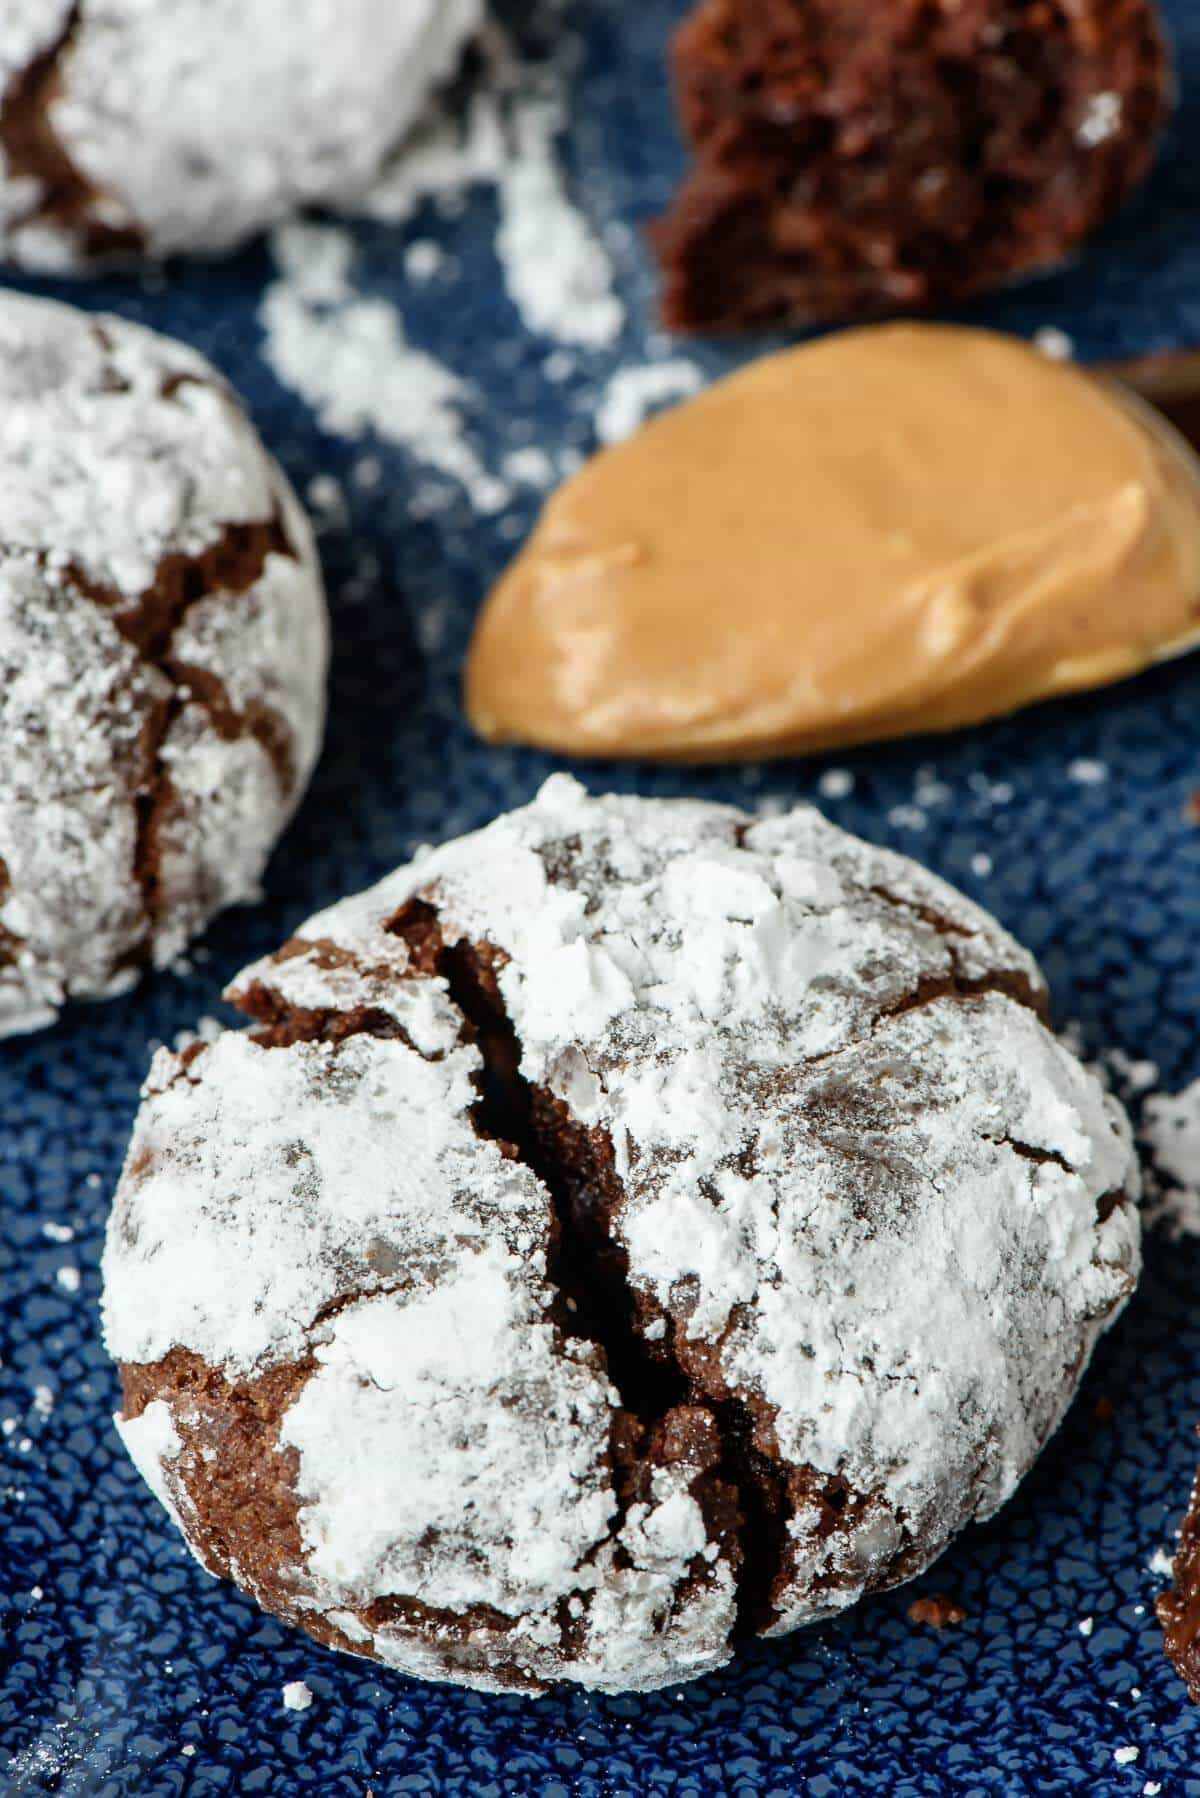 Chocolate Peanut Butter Cookies With Cocoa Powder